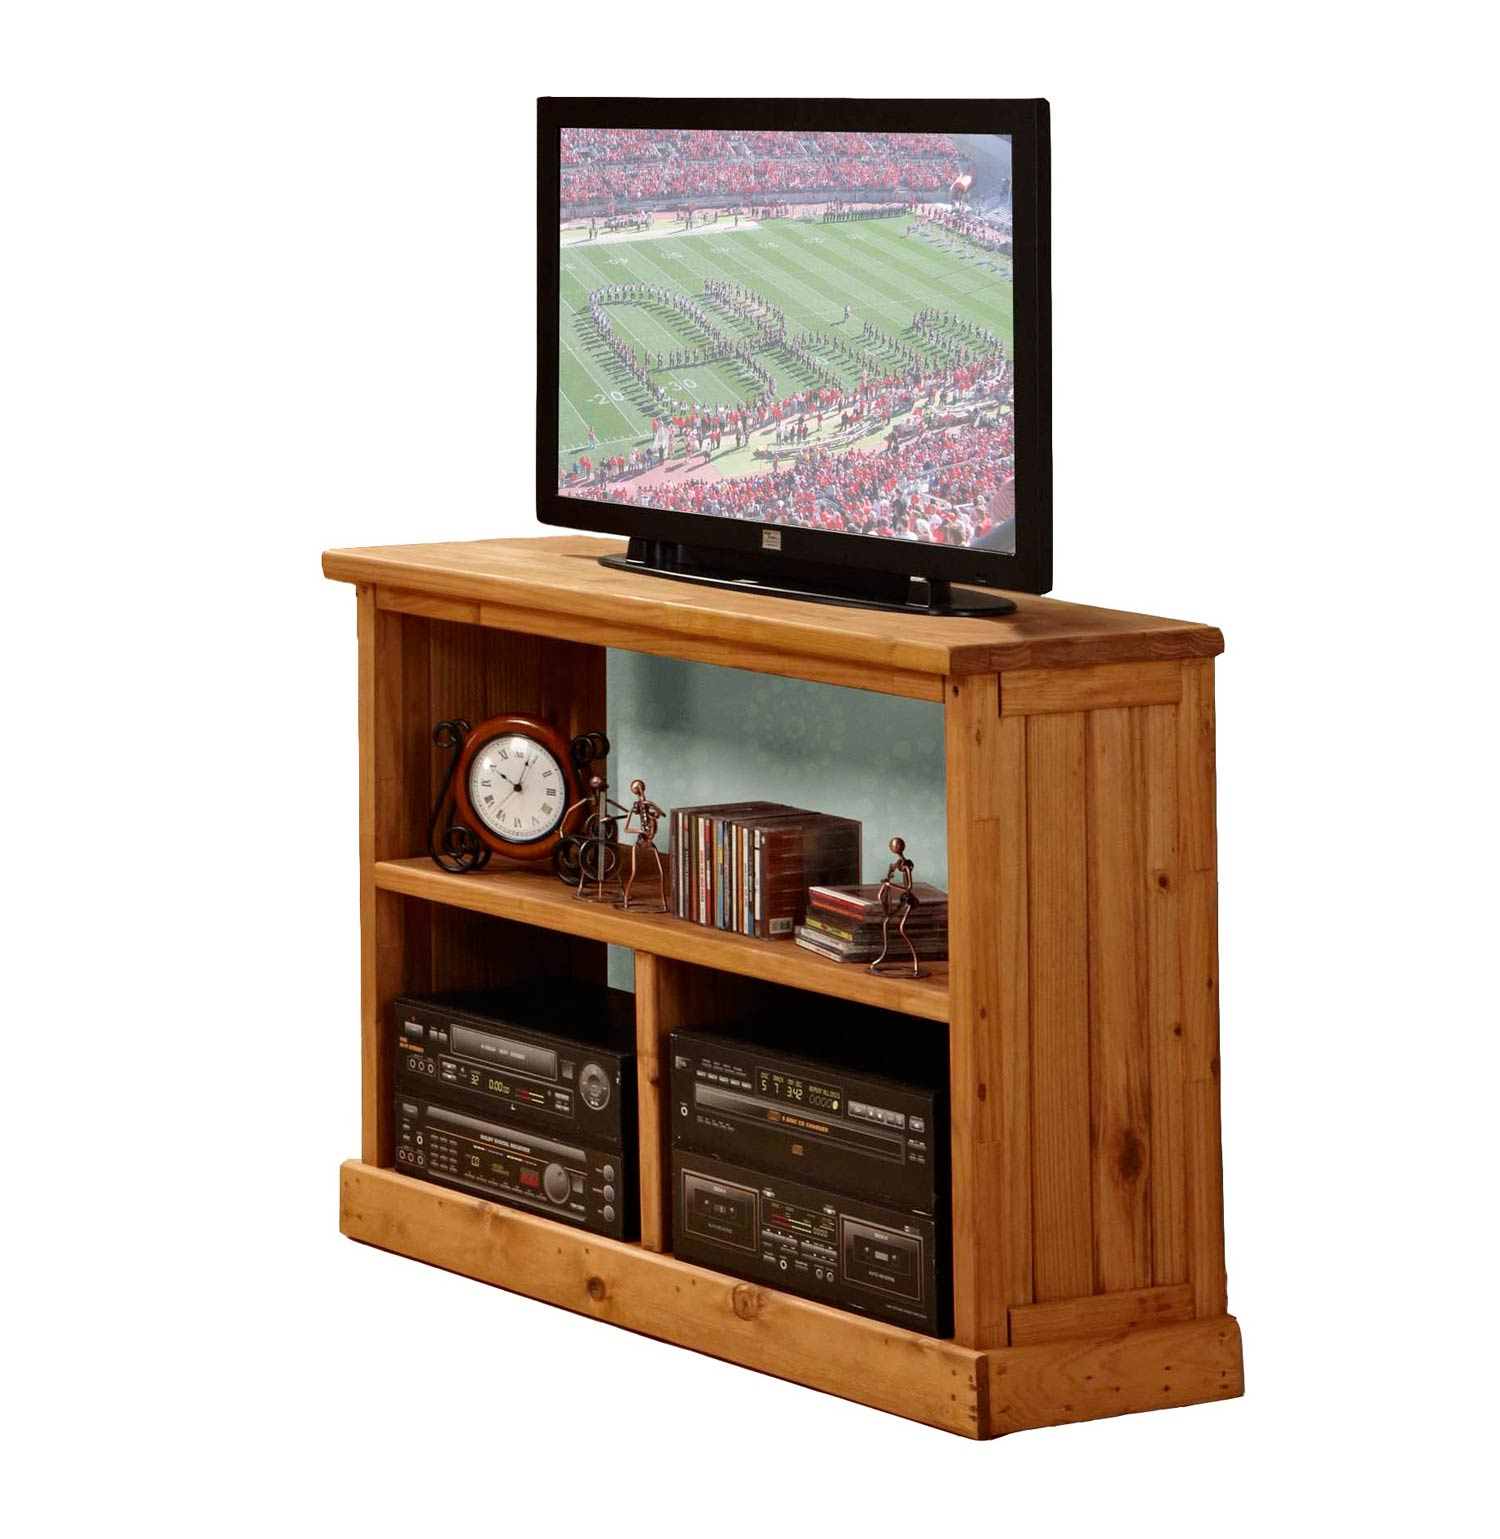 Chelsea Home 31700 TV Stand - Ginger Stain